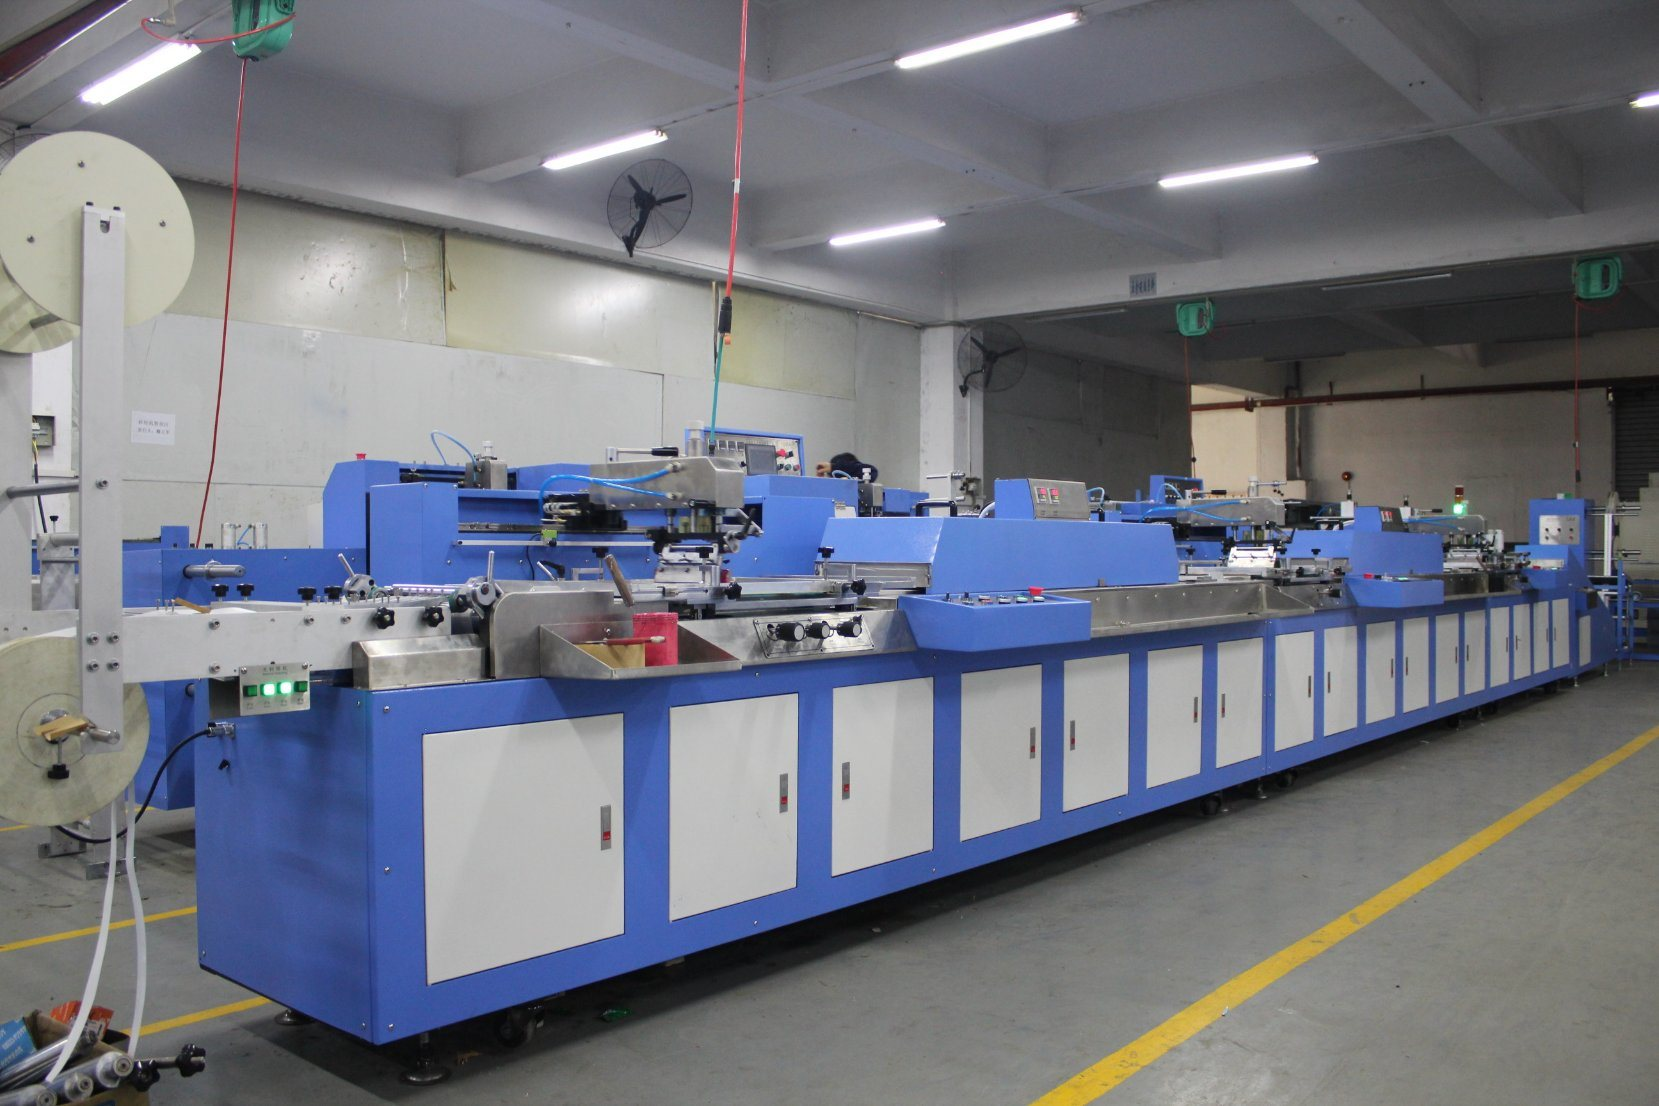 professional factory for Polyester Elastic Tapes Dyeing Machine - 3 Colors Apparel Labels Automatic Screen Printing Machine with Enclosure – Kin Wah